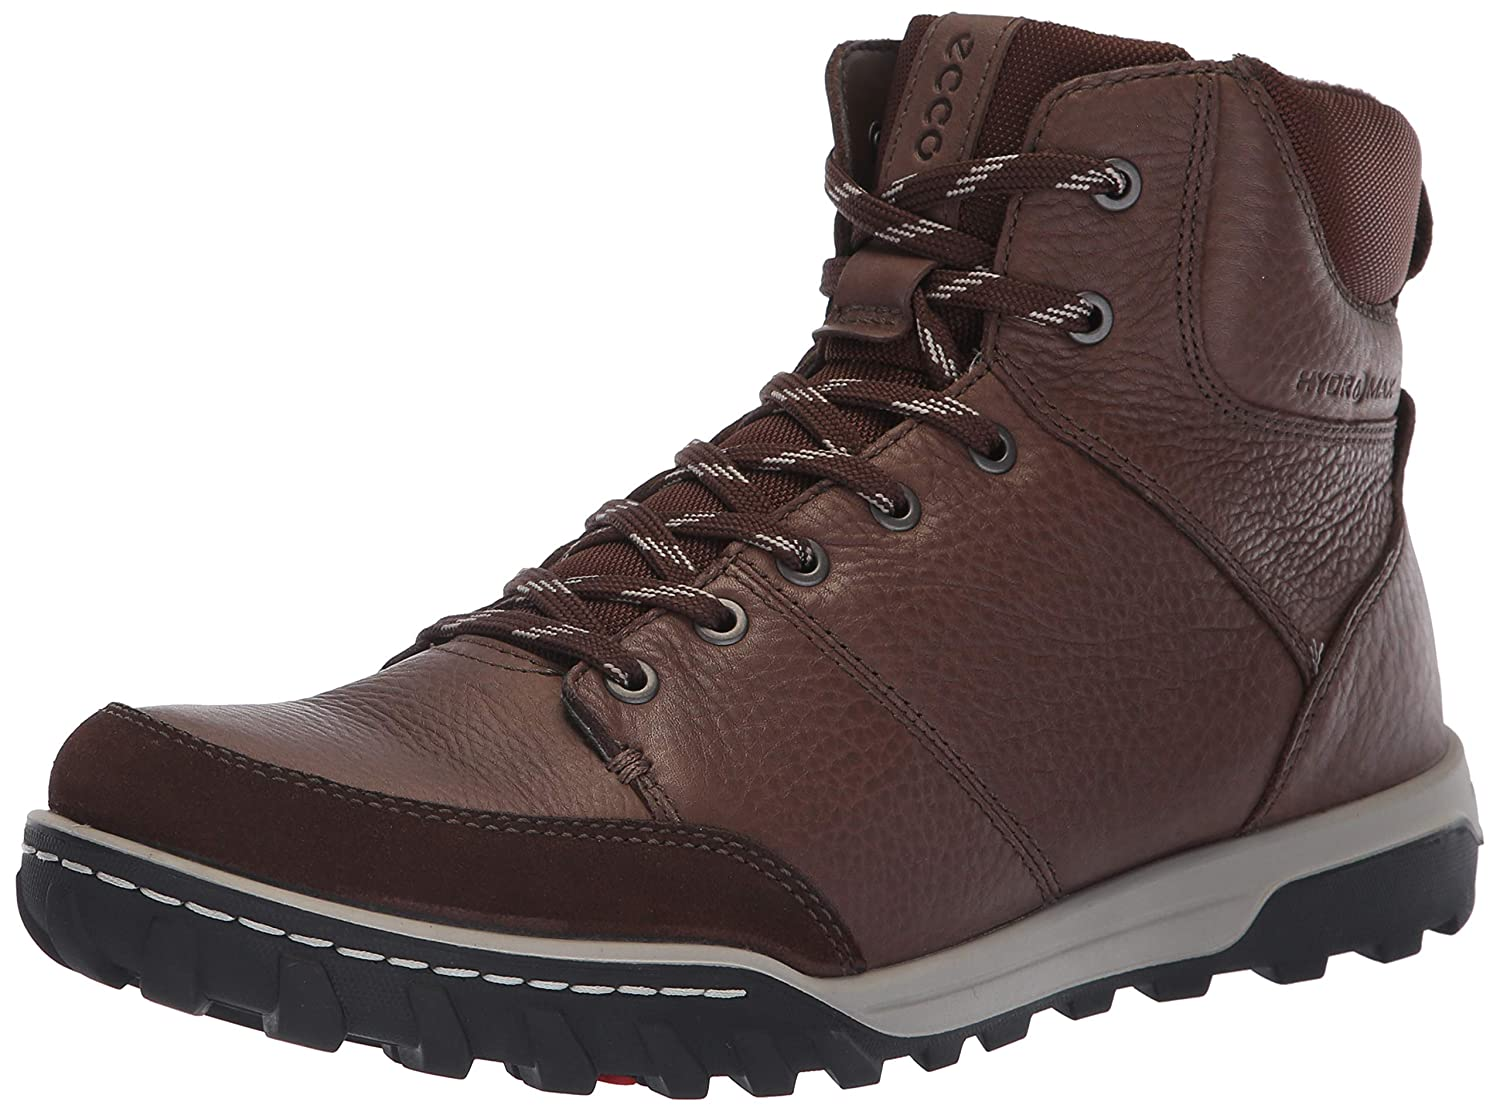 9f370fd171 ECCO Men's Urban Lifestyle High Hiking Shoe